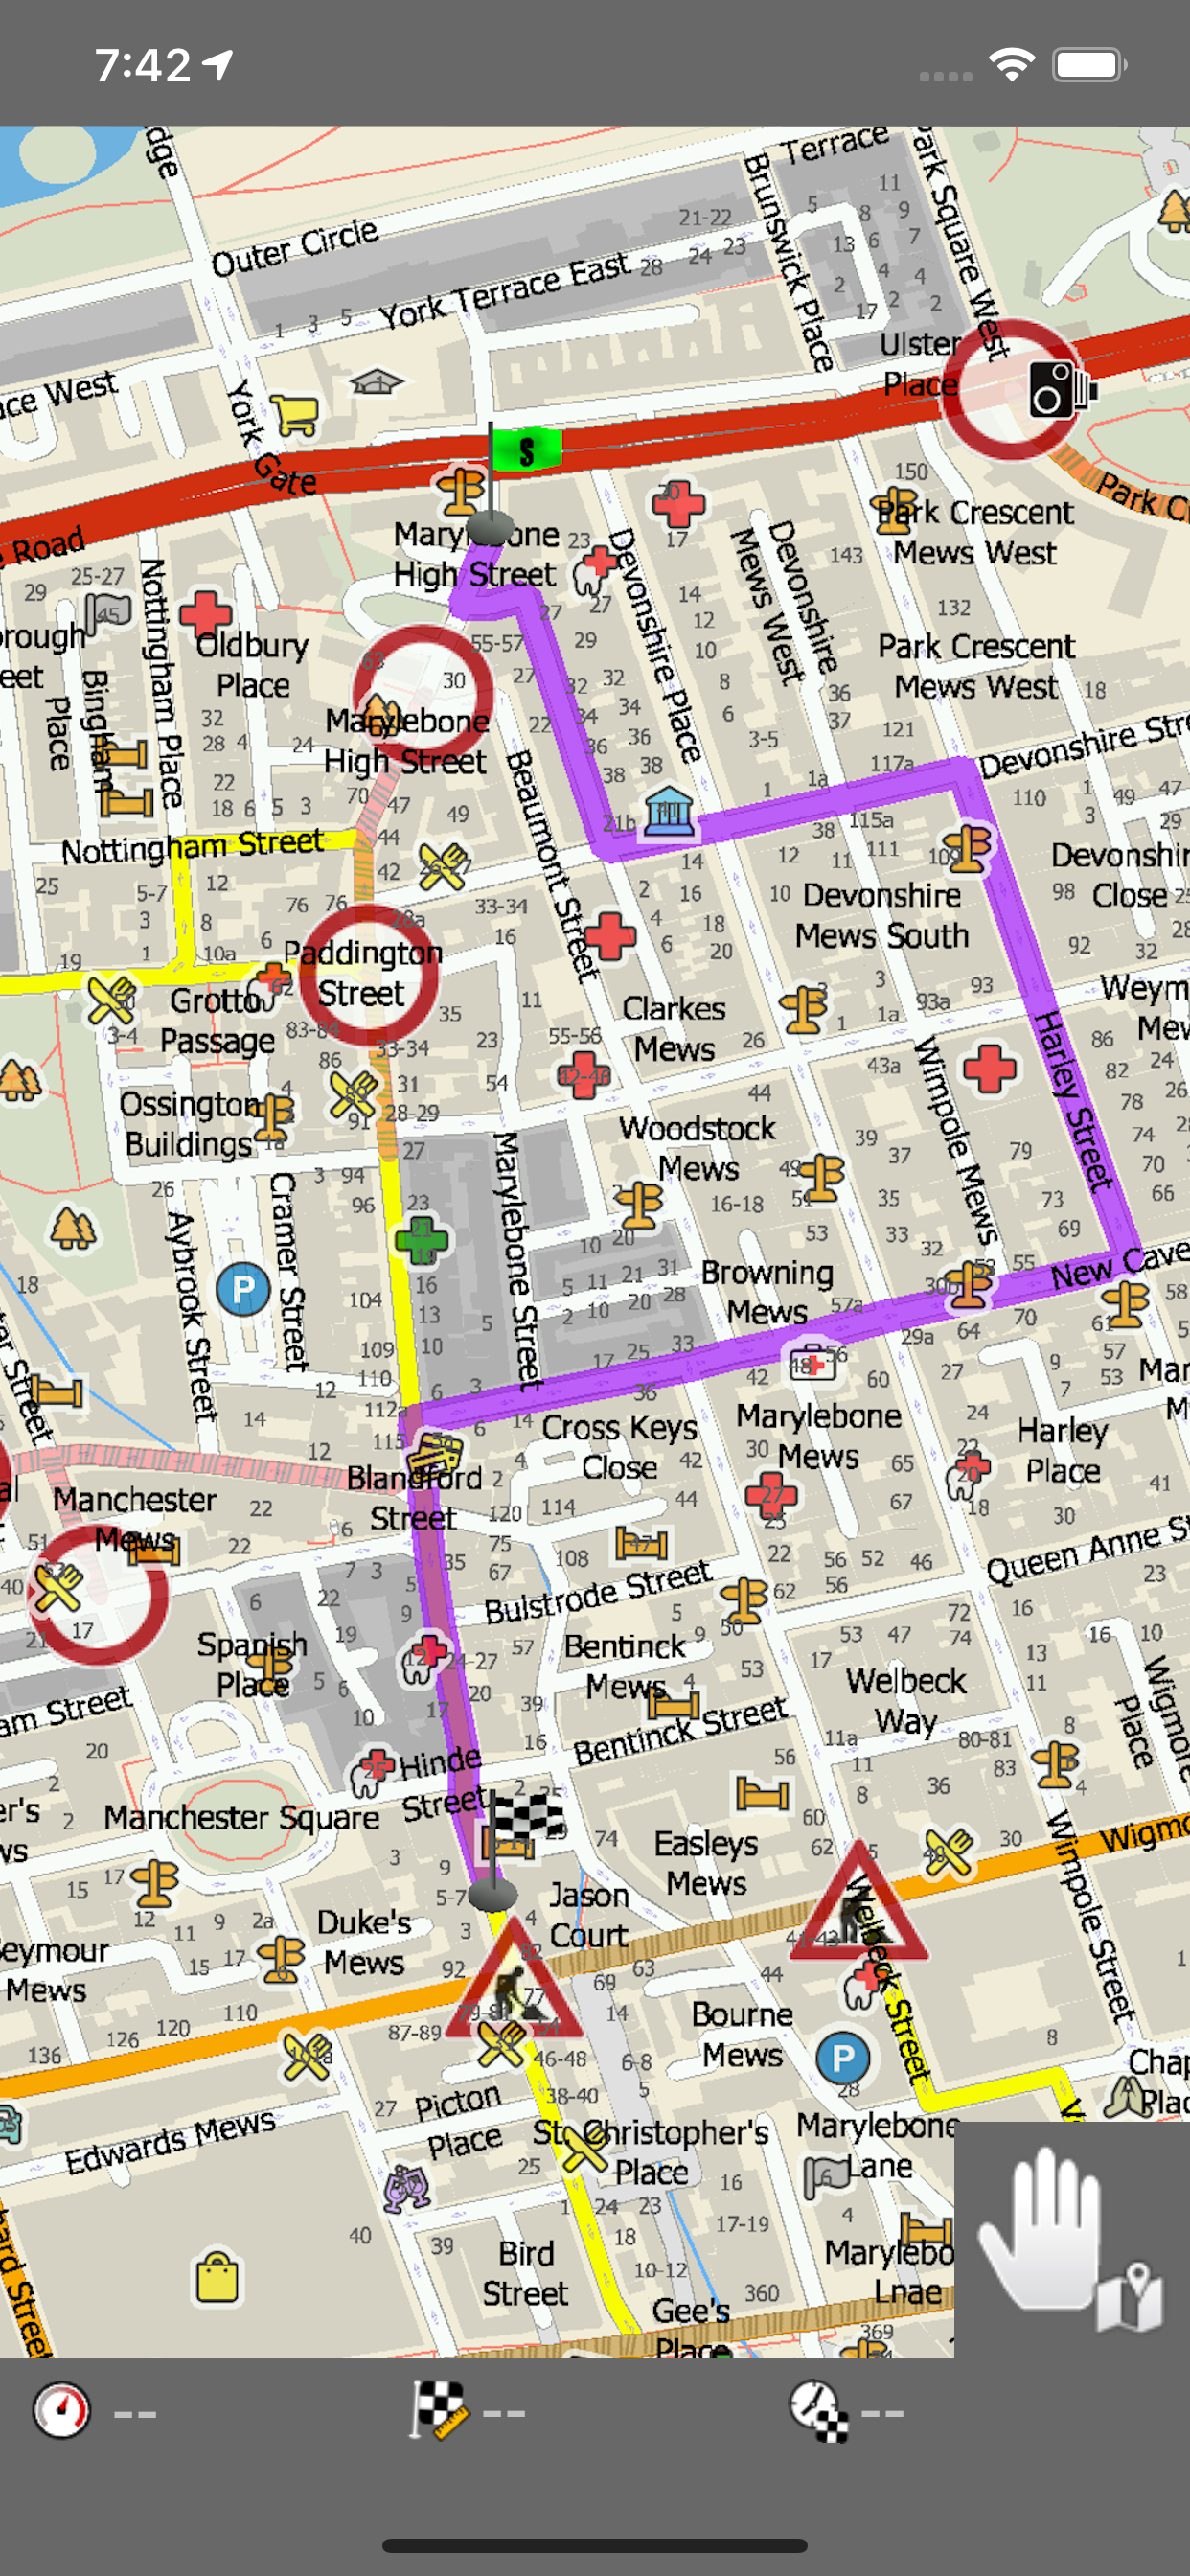 Navigator 2.0 for iOS - a route calculated using HD traffic information